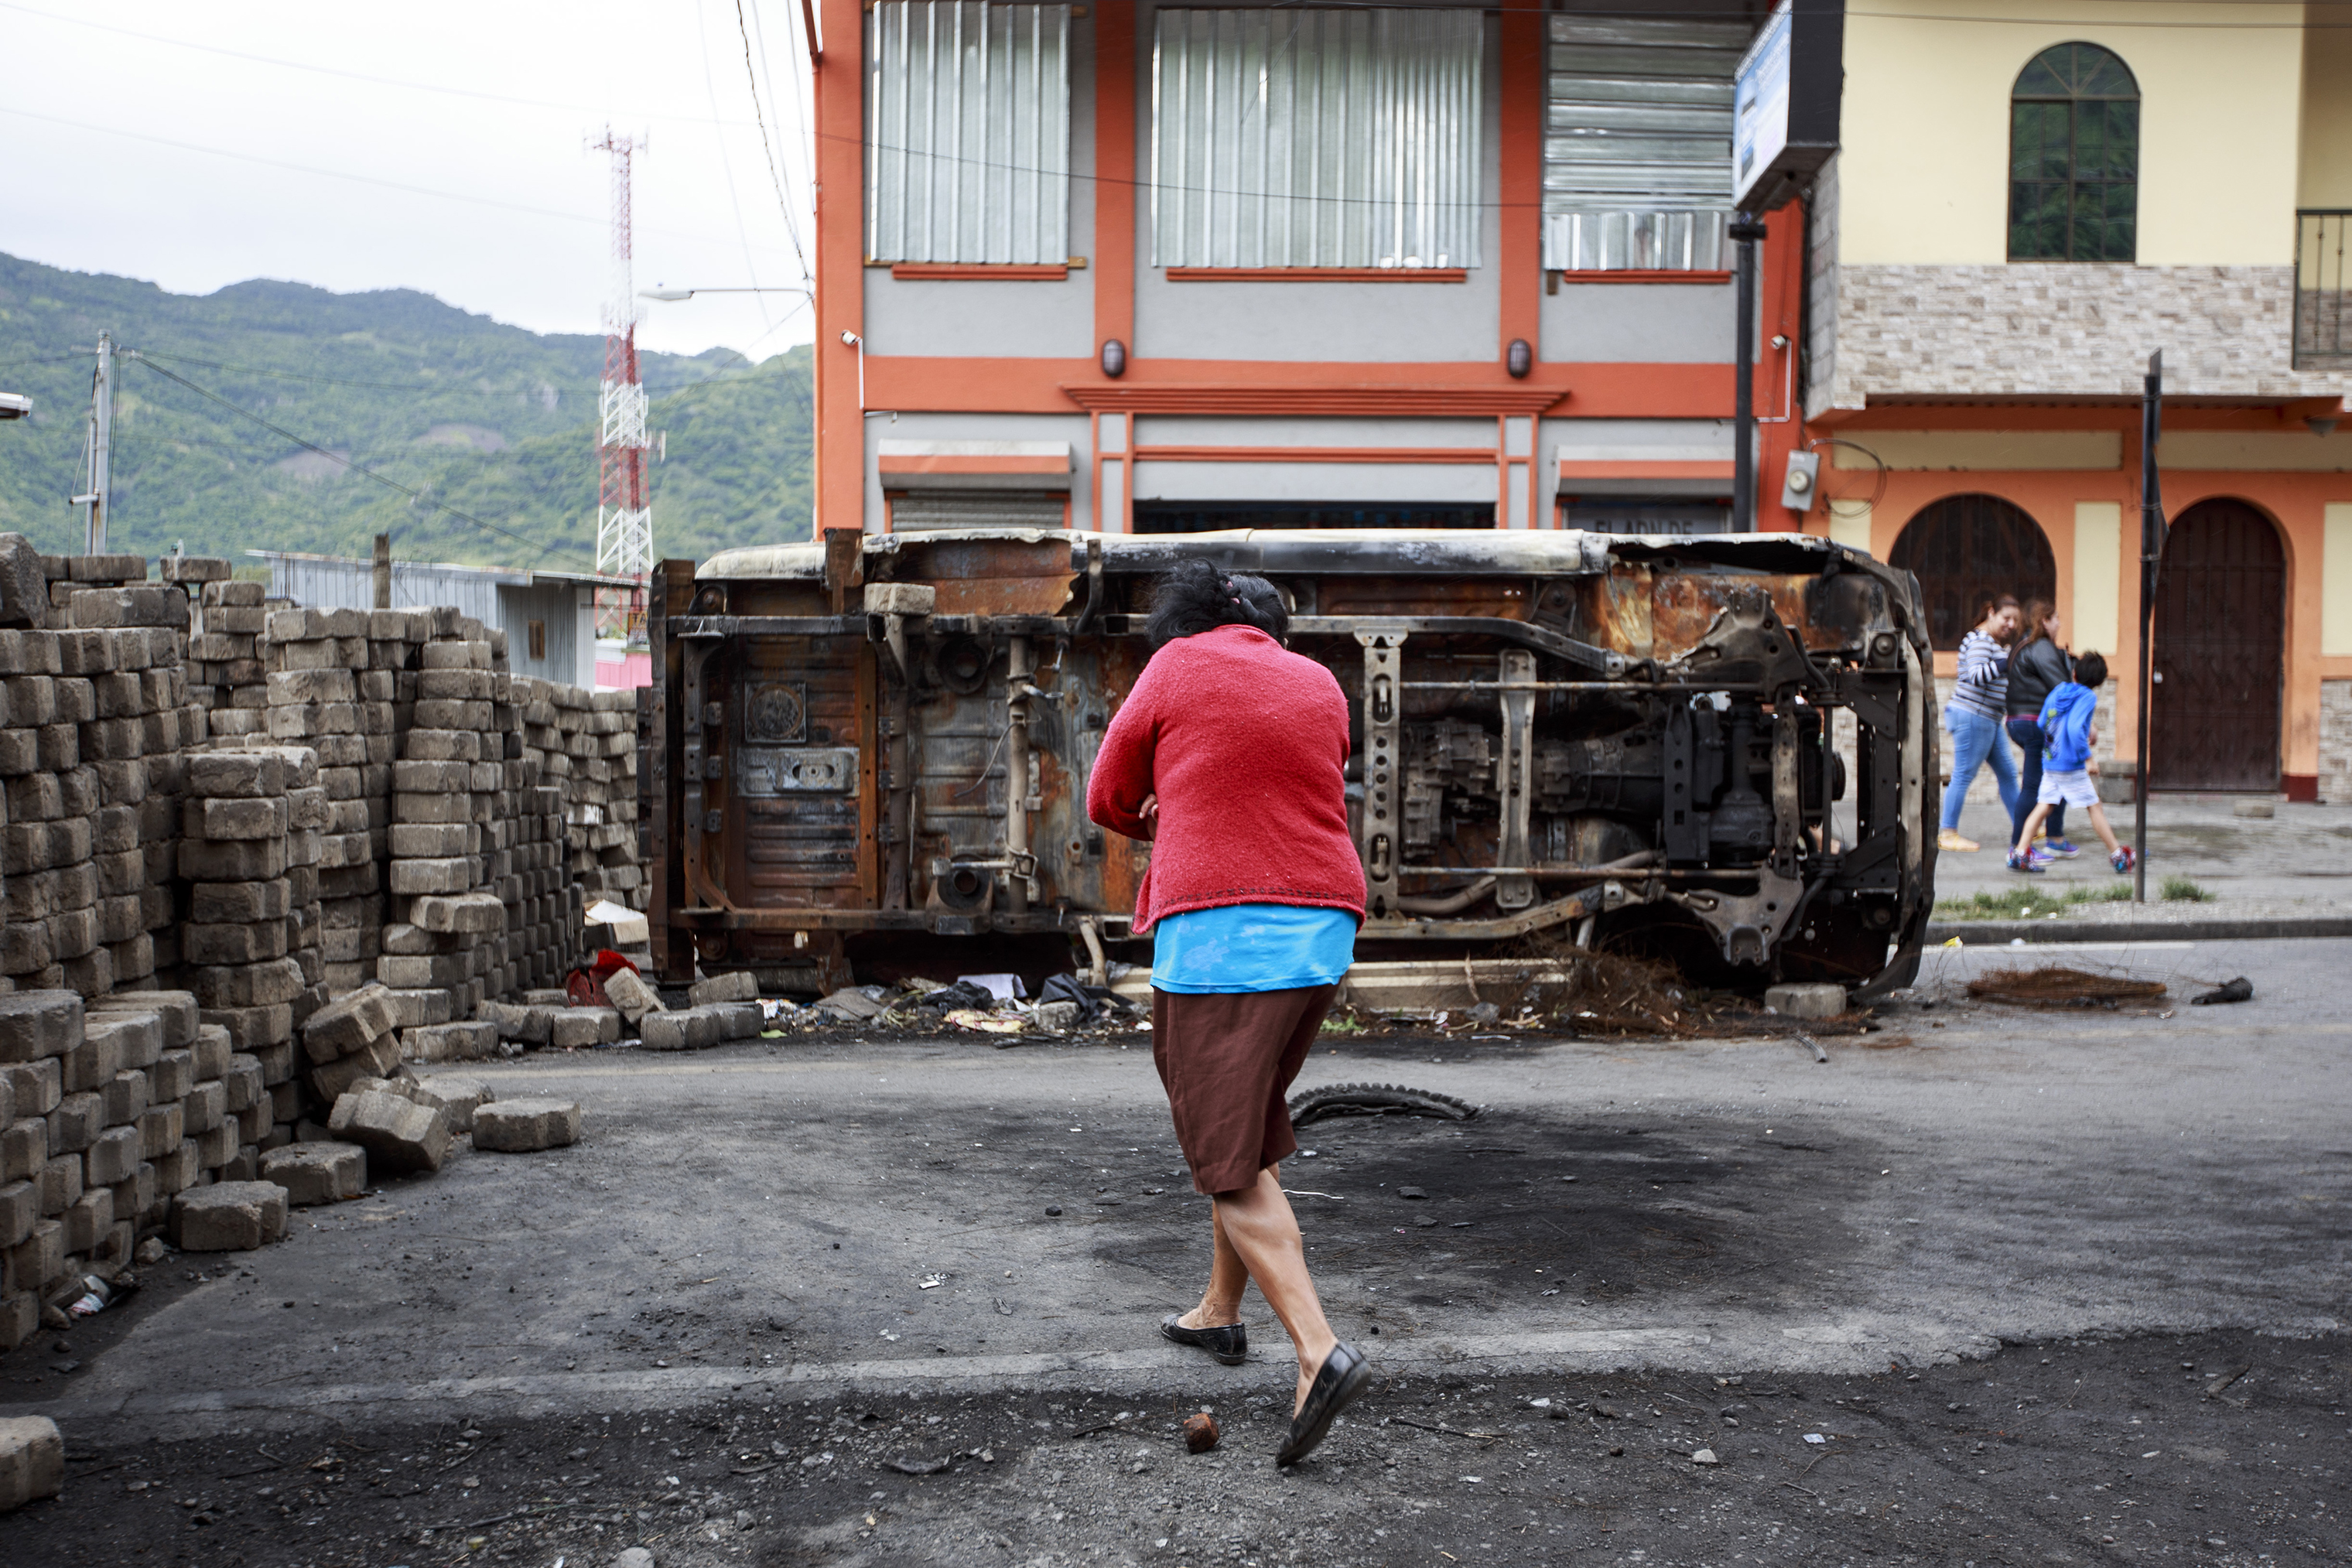 A woman walks near a barricade in Jinotega, north of Managua, Nicaragua, on June 4, 2018.